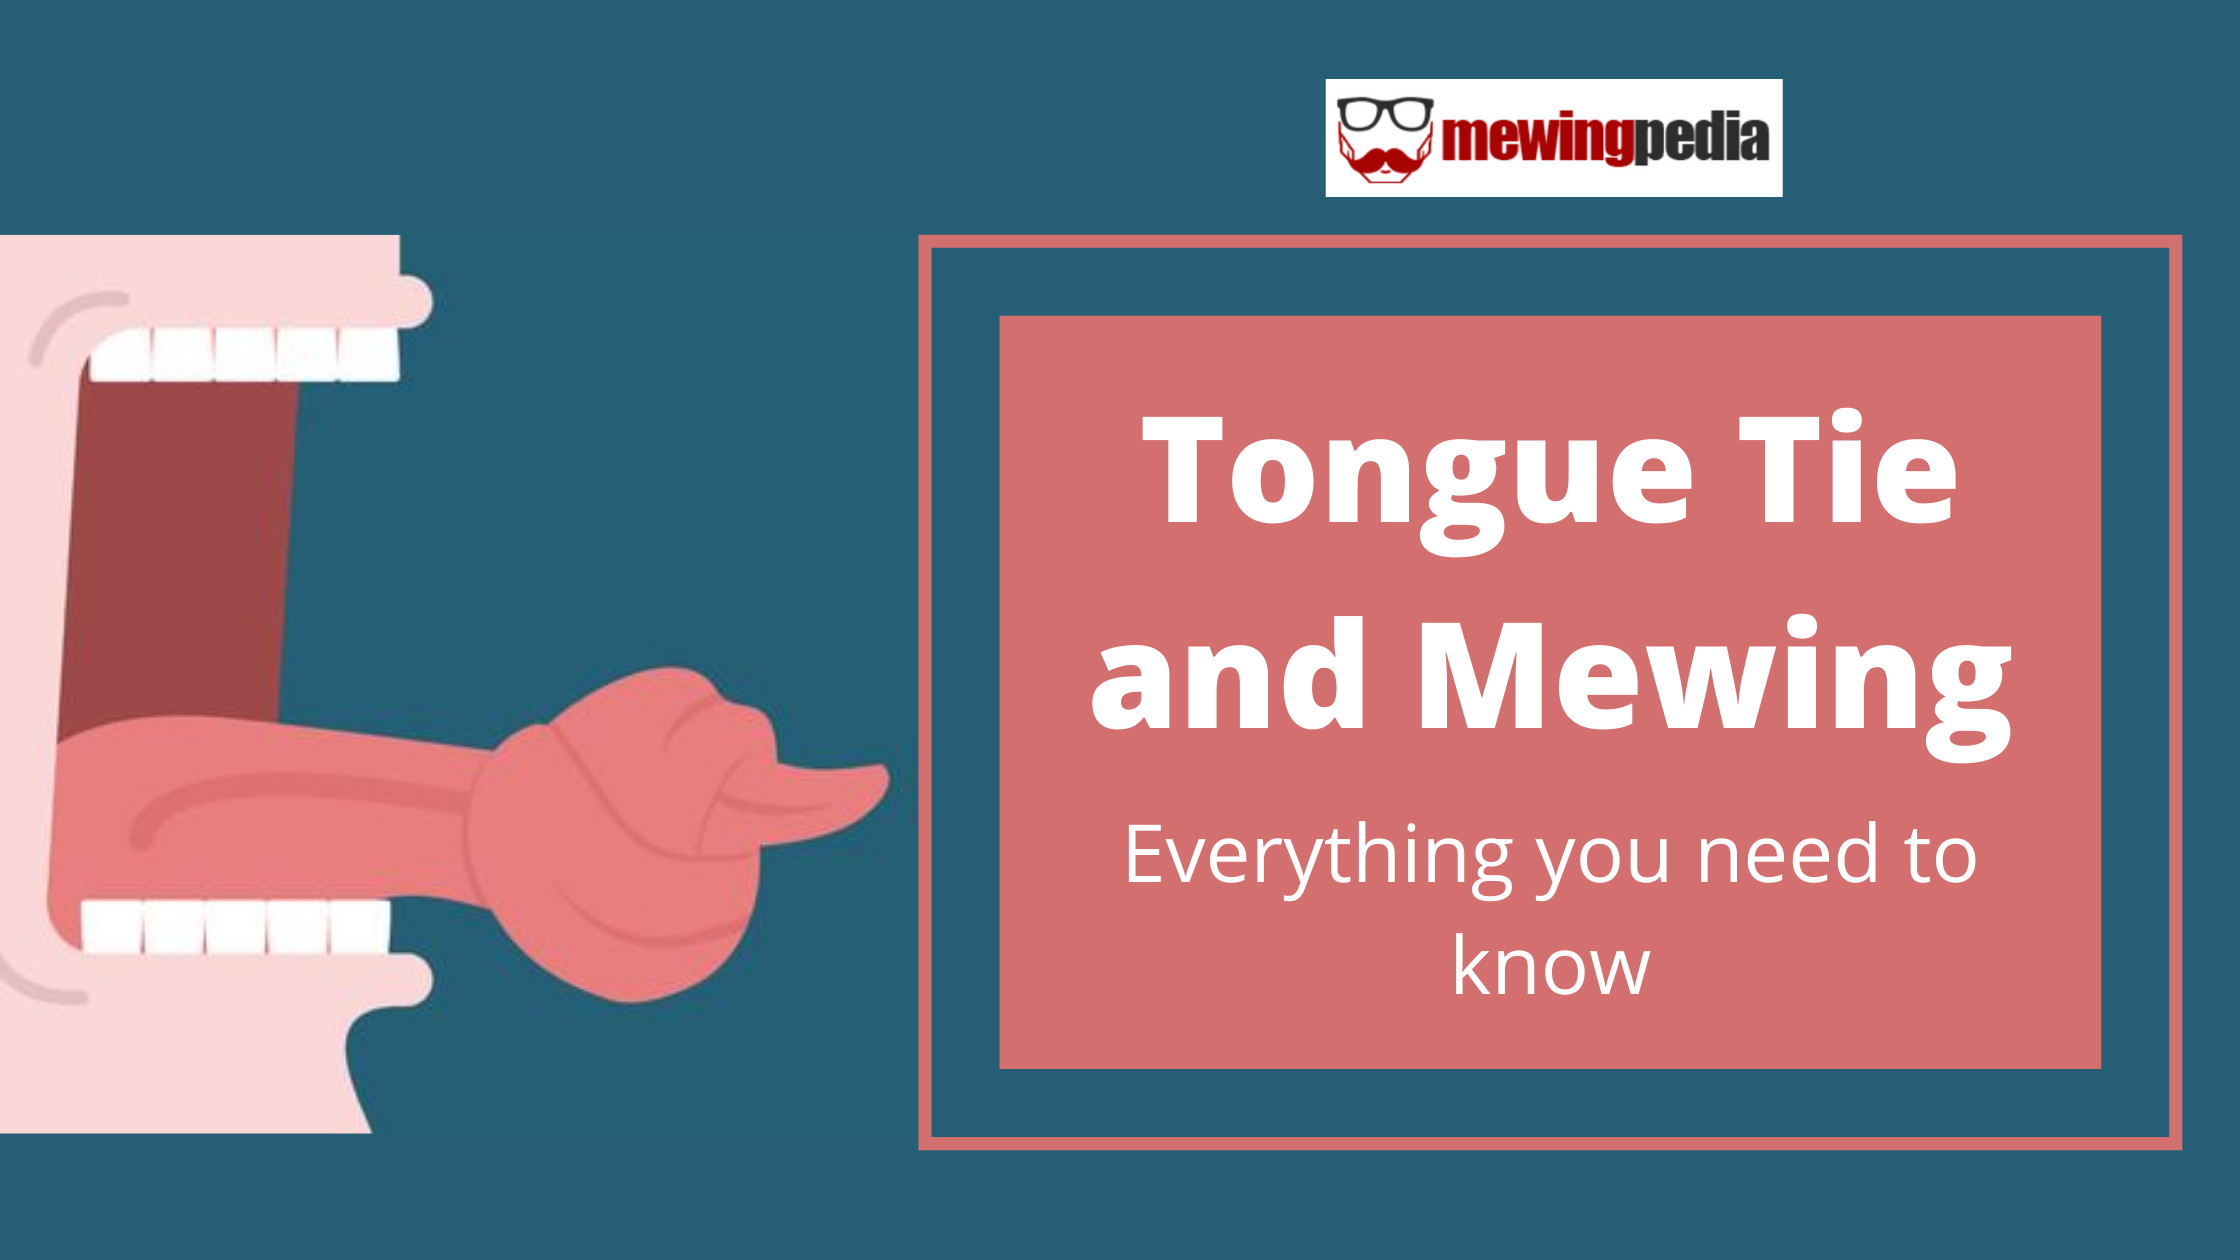 Tongue Tie and Mewing: Everything you need to know